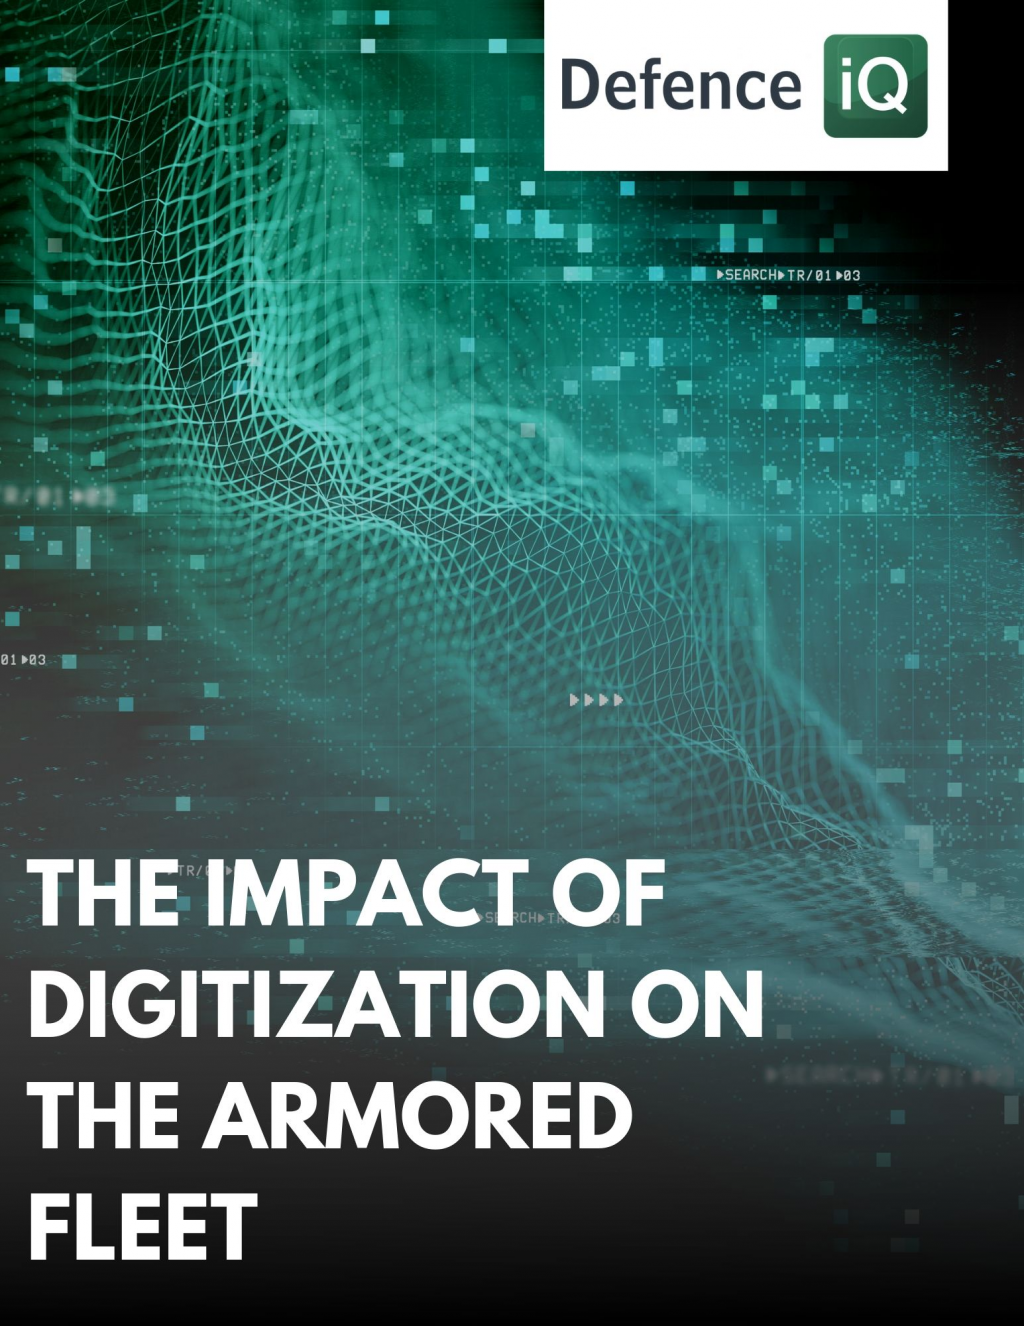 The Impact Of Digitization On the Armored Fleet